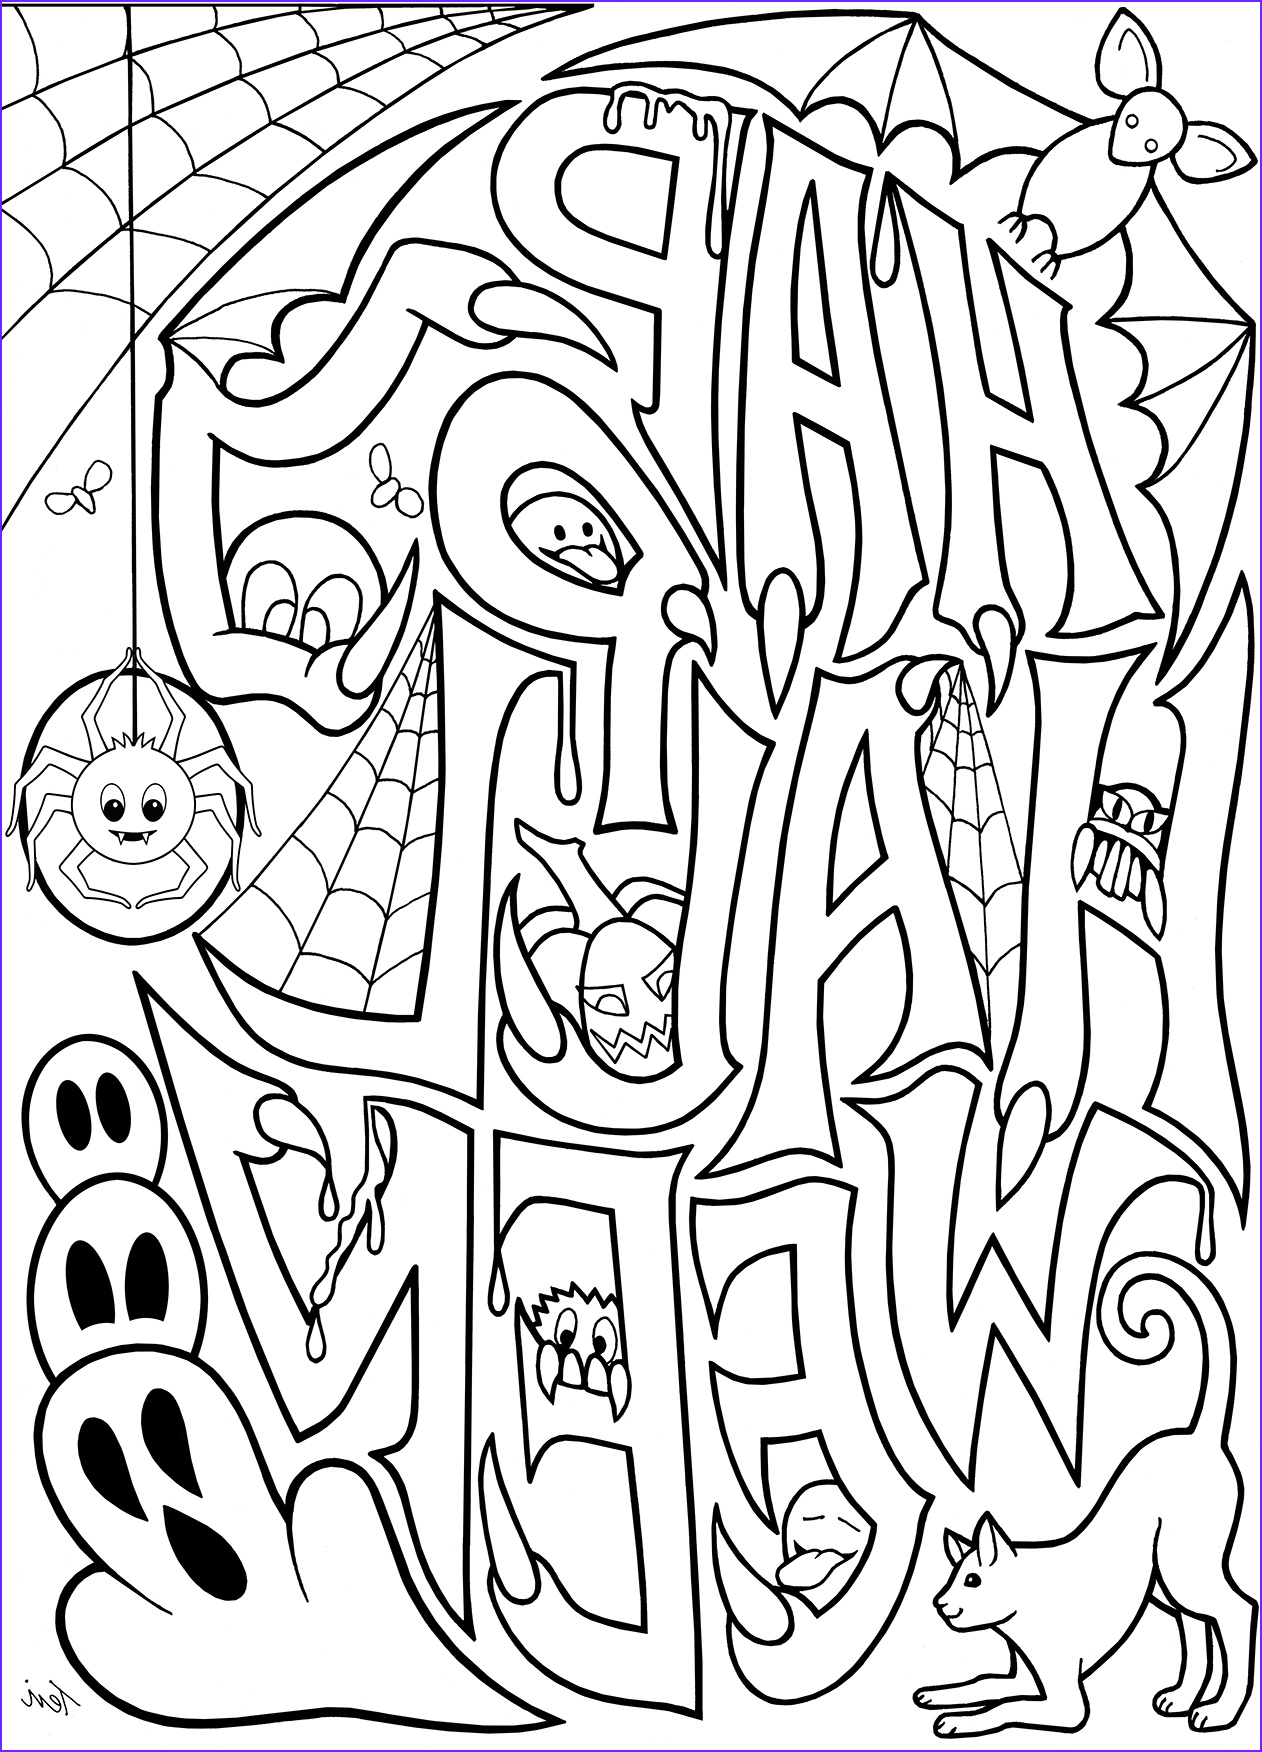 Free Halloween Coloring Pages for Adults Elegant Photos Free Adult Coloring Book Pages Happy Halloween by Blue